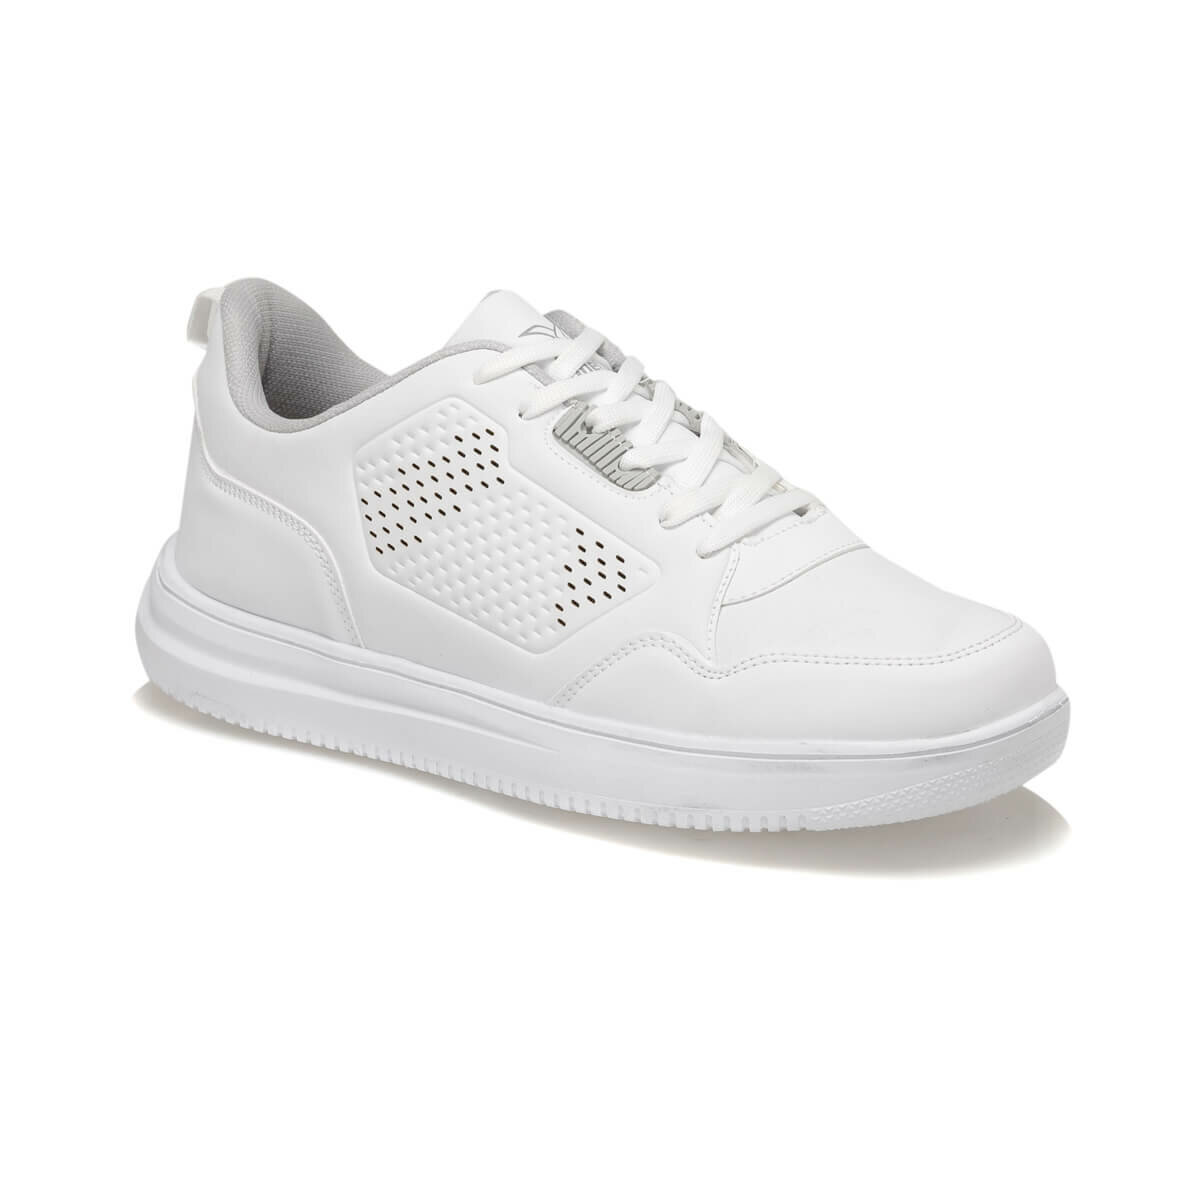 FLO FREY M White Men 'S Sneaker Shoes KINETIX